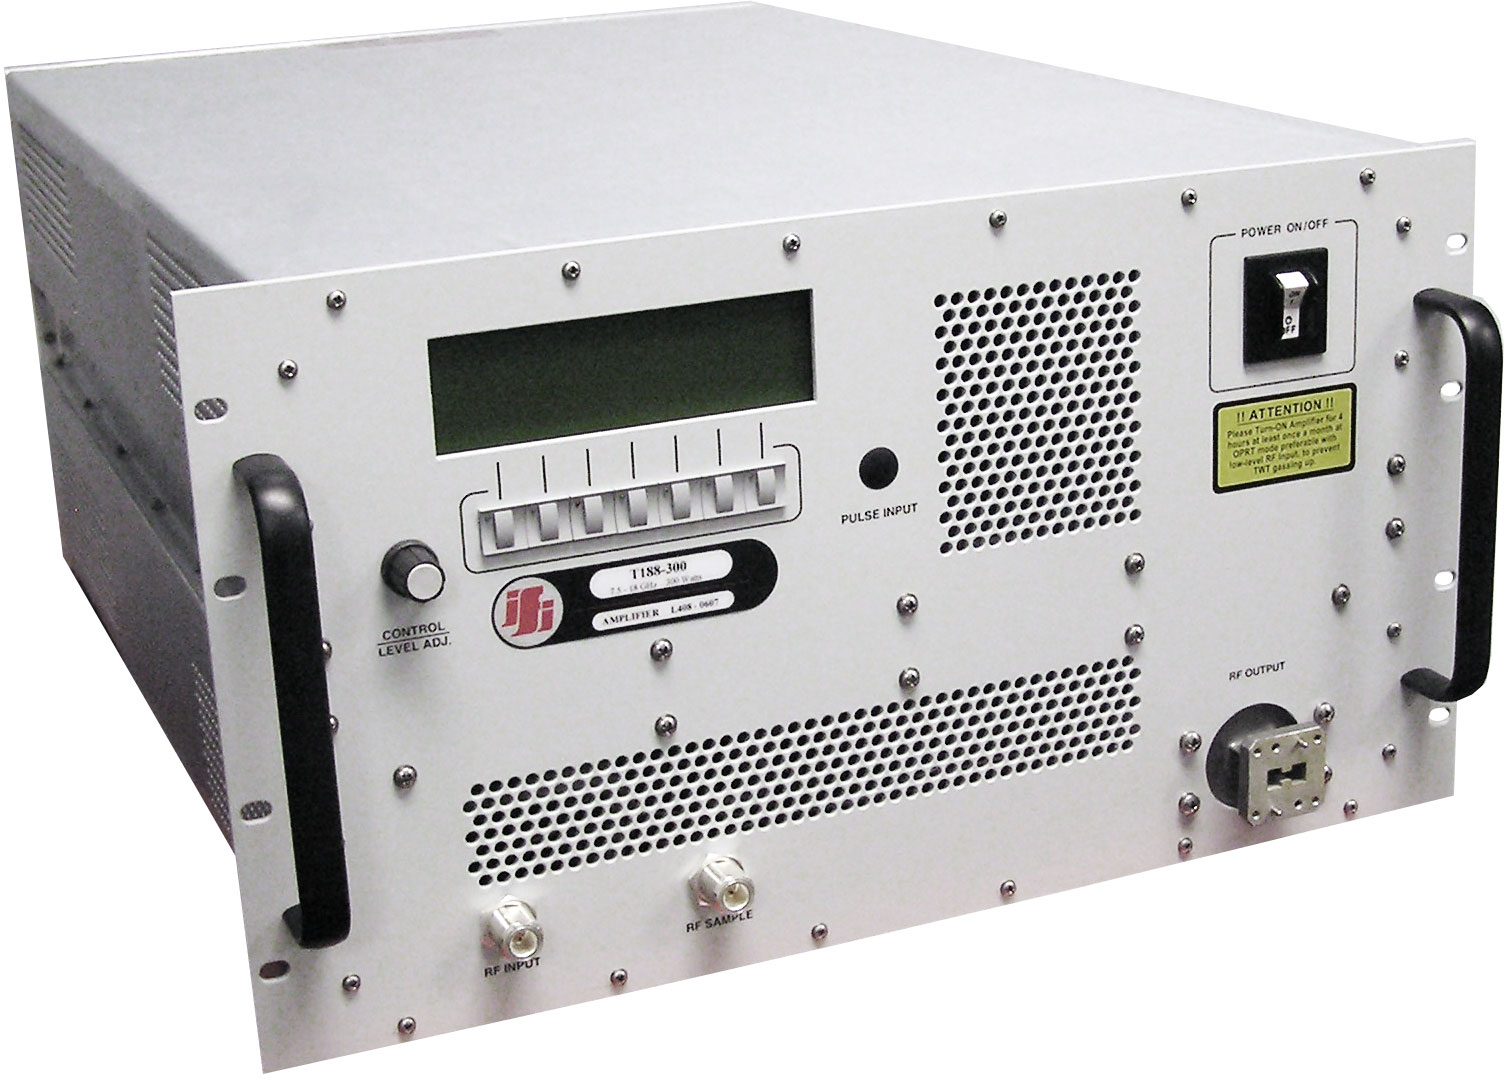 IFI T188-500 High Power Amplifier %>